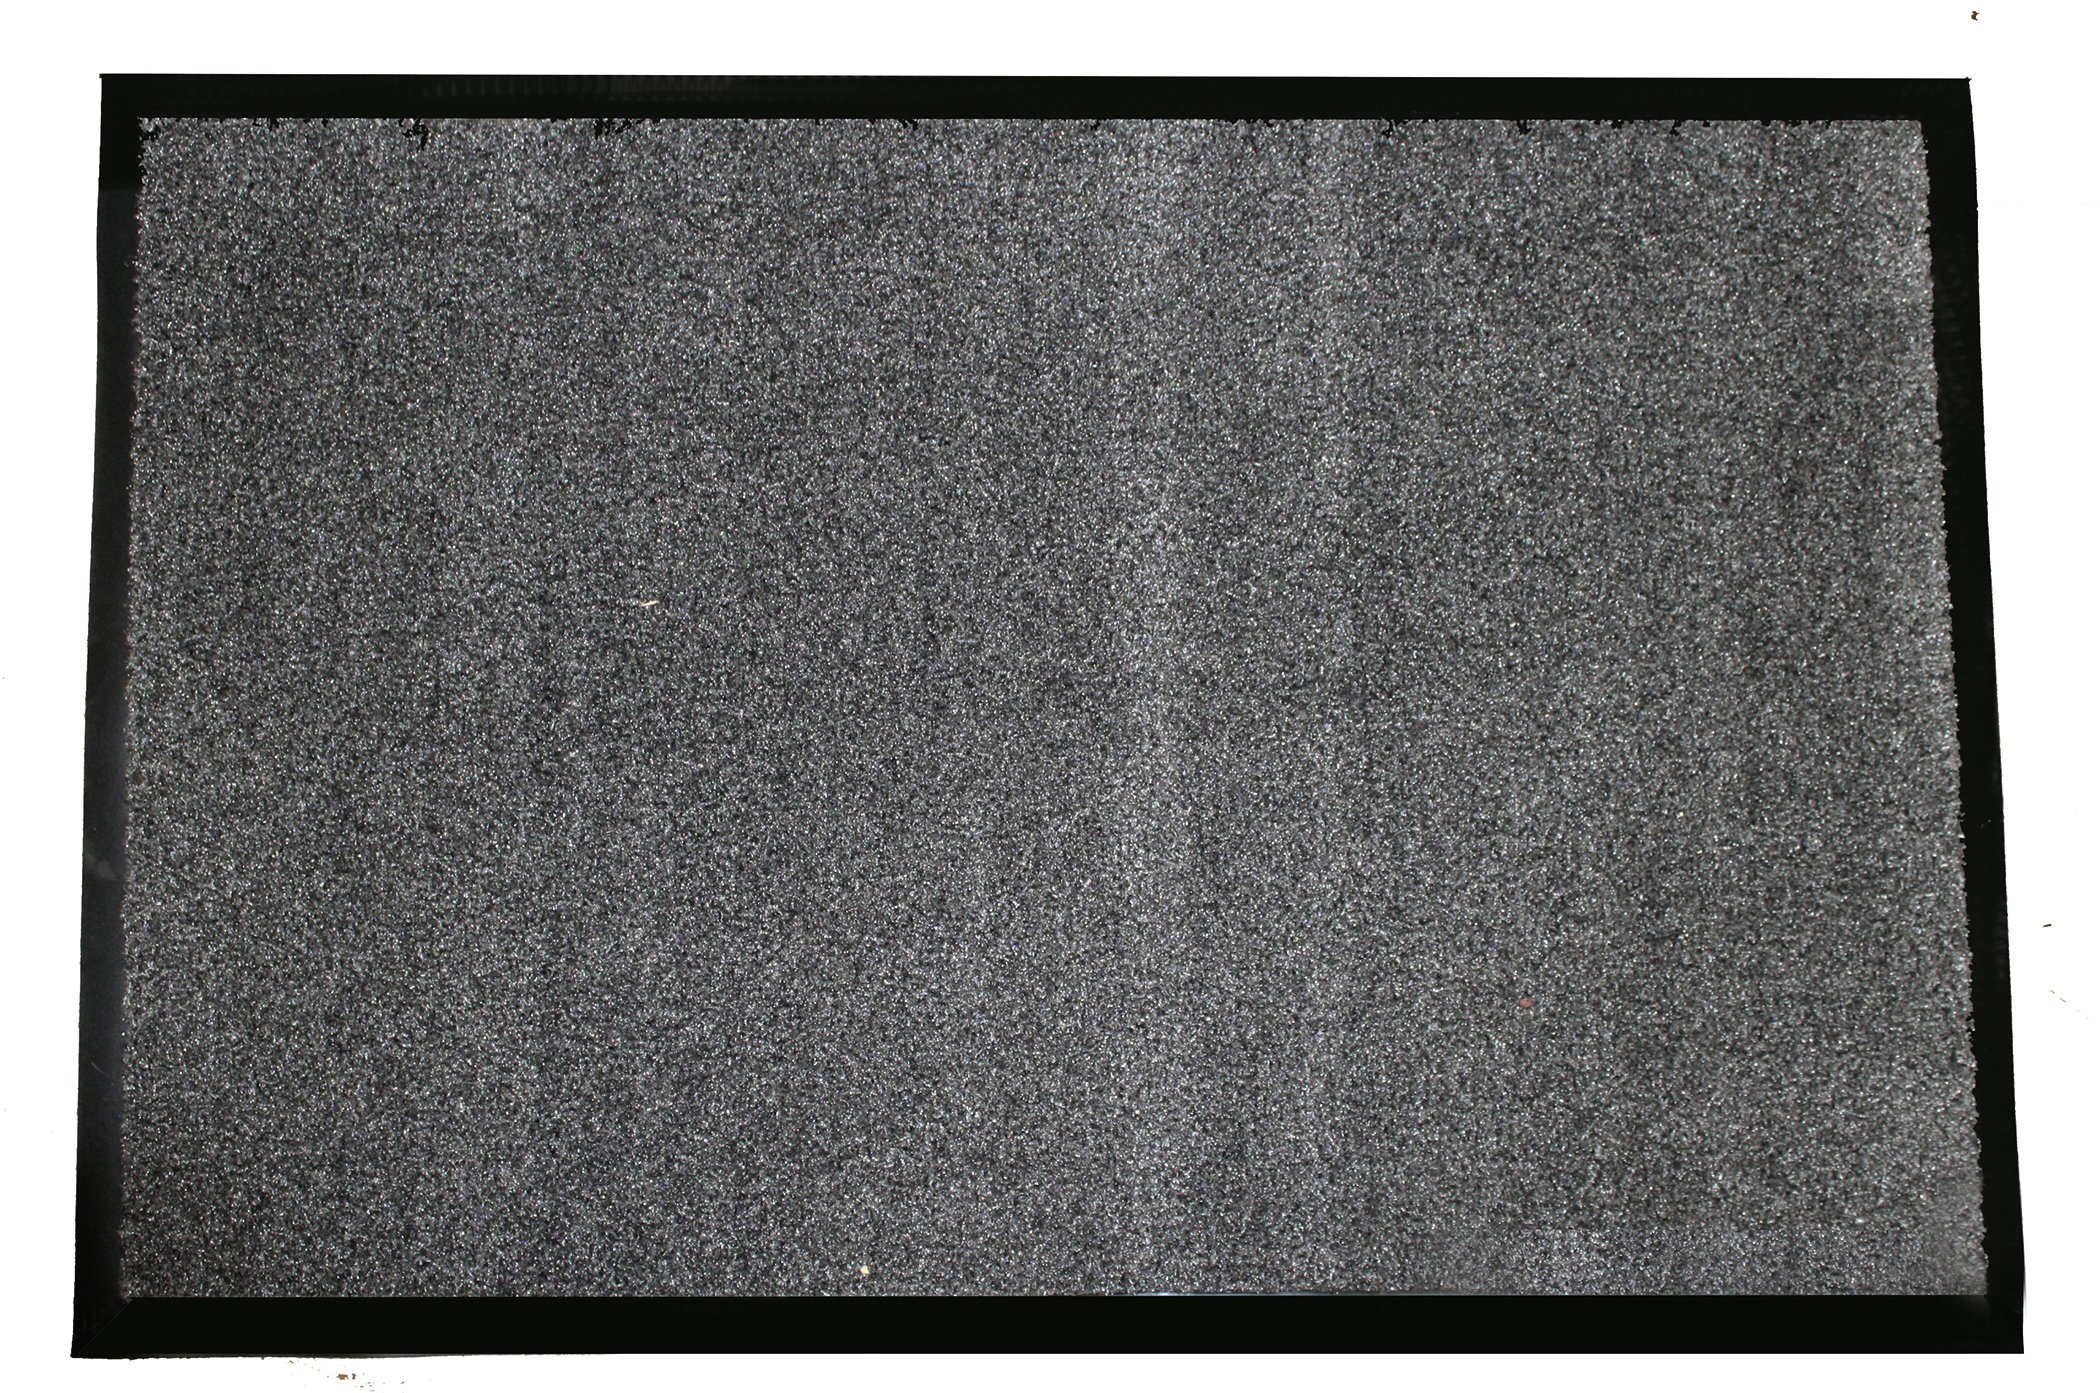 Durable Wipe-N-Walk Vinyl Backed Indoor Carpet Entrance Mat, 3' x 4', Charcoal by Durable Corporation